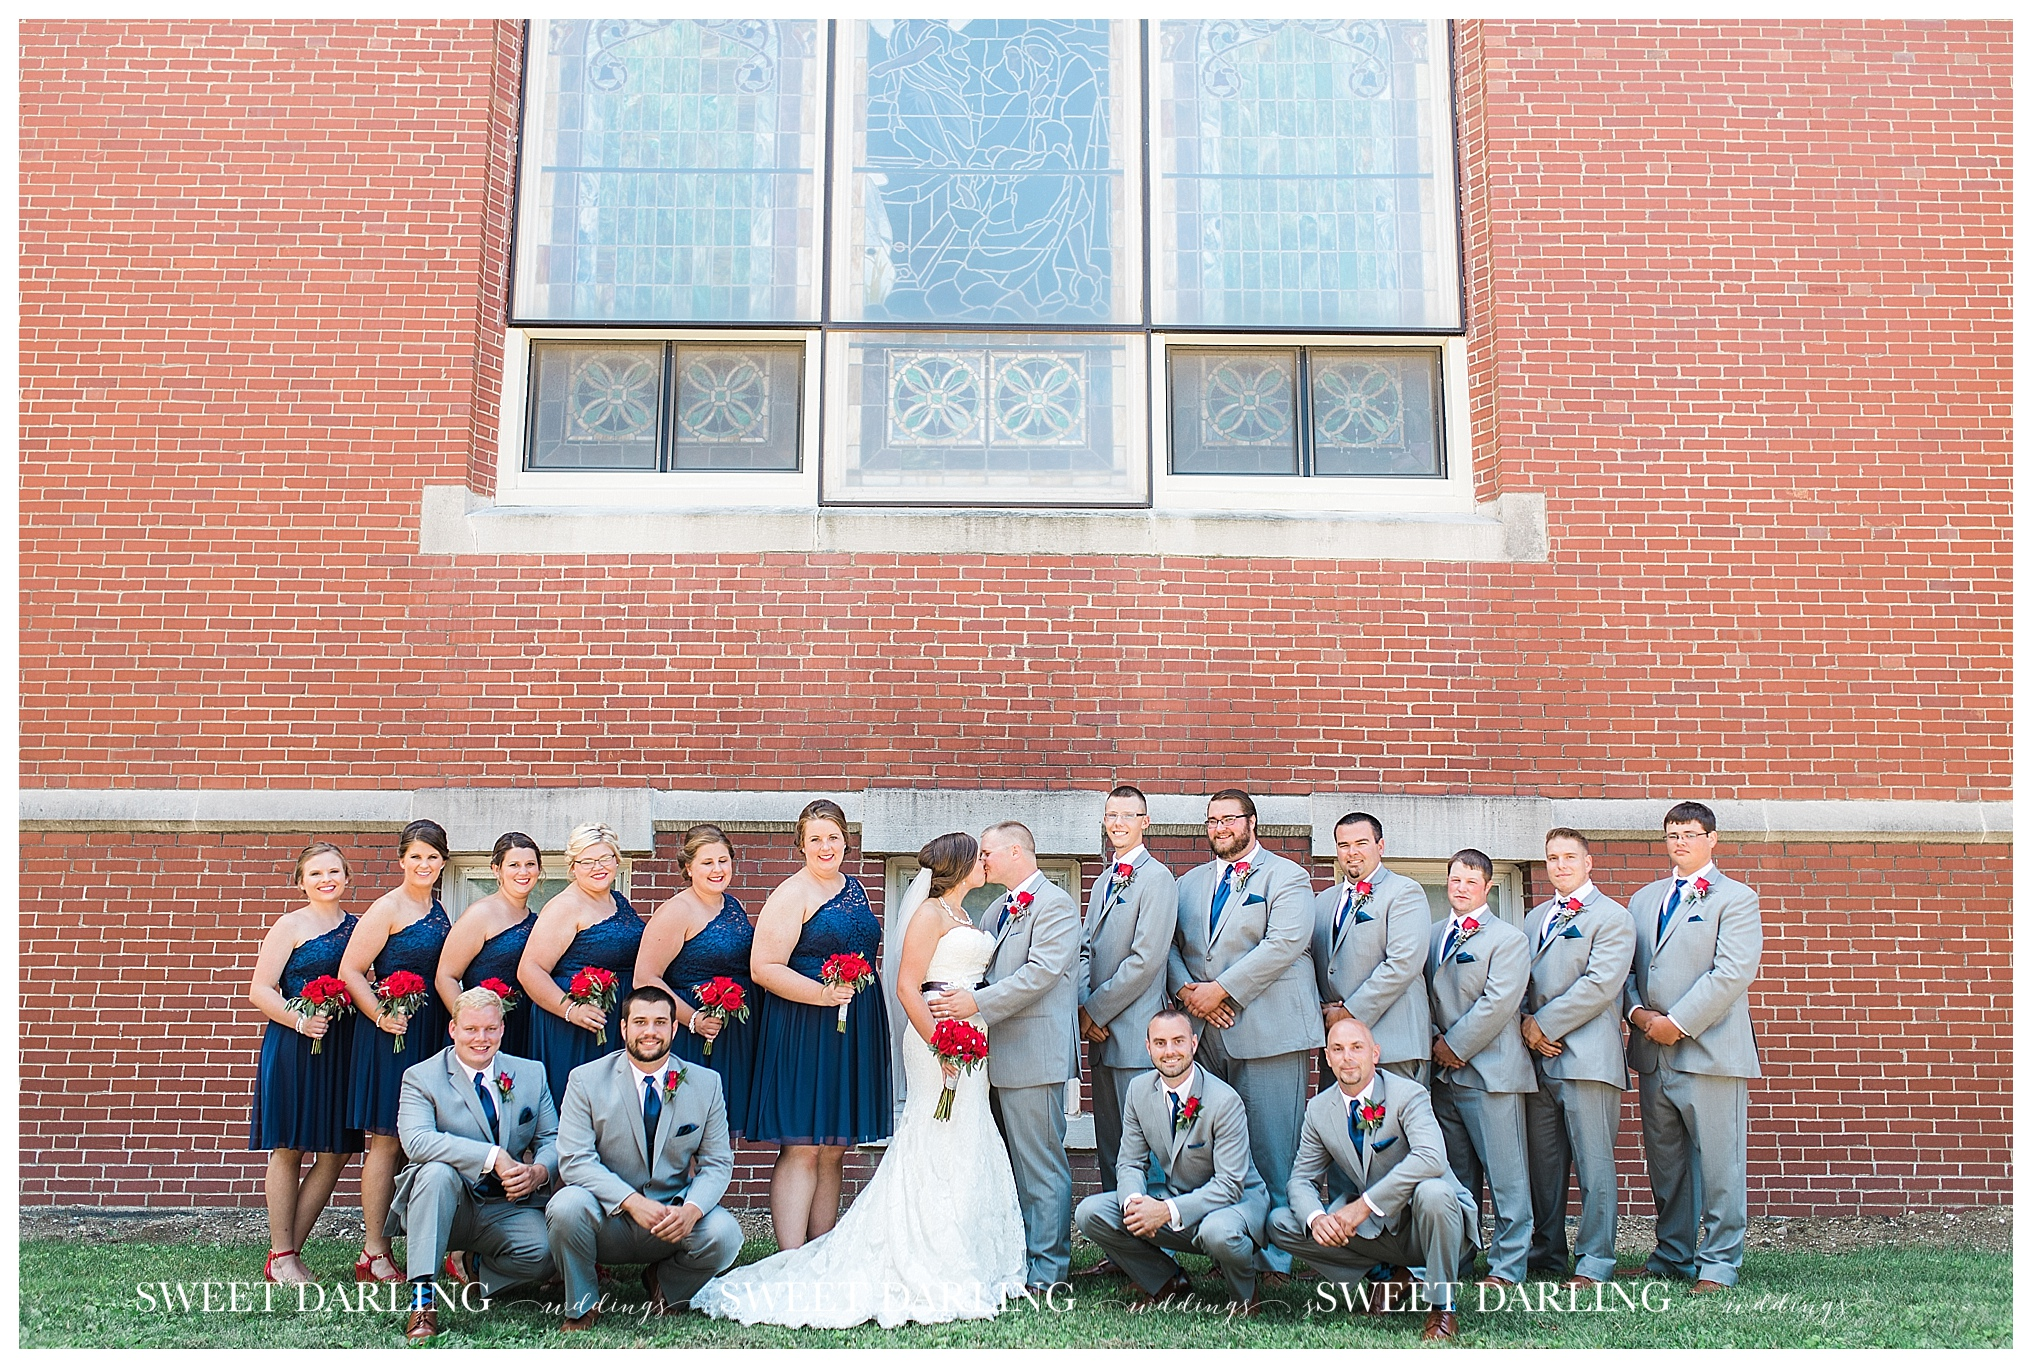 champaign-county-royal-paxton-illinois-sweet-darling-weddings-photography-red-navy-roses_1383.jpg